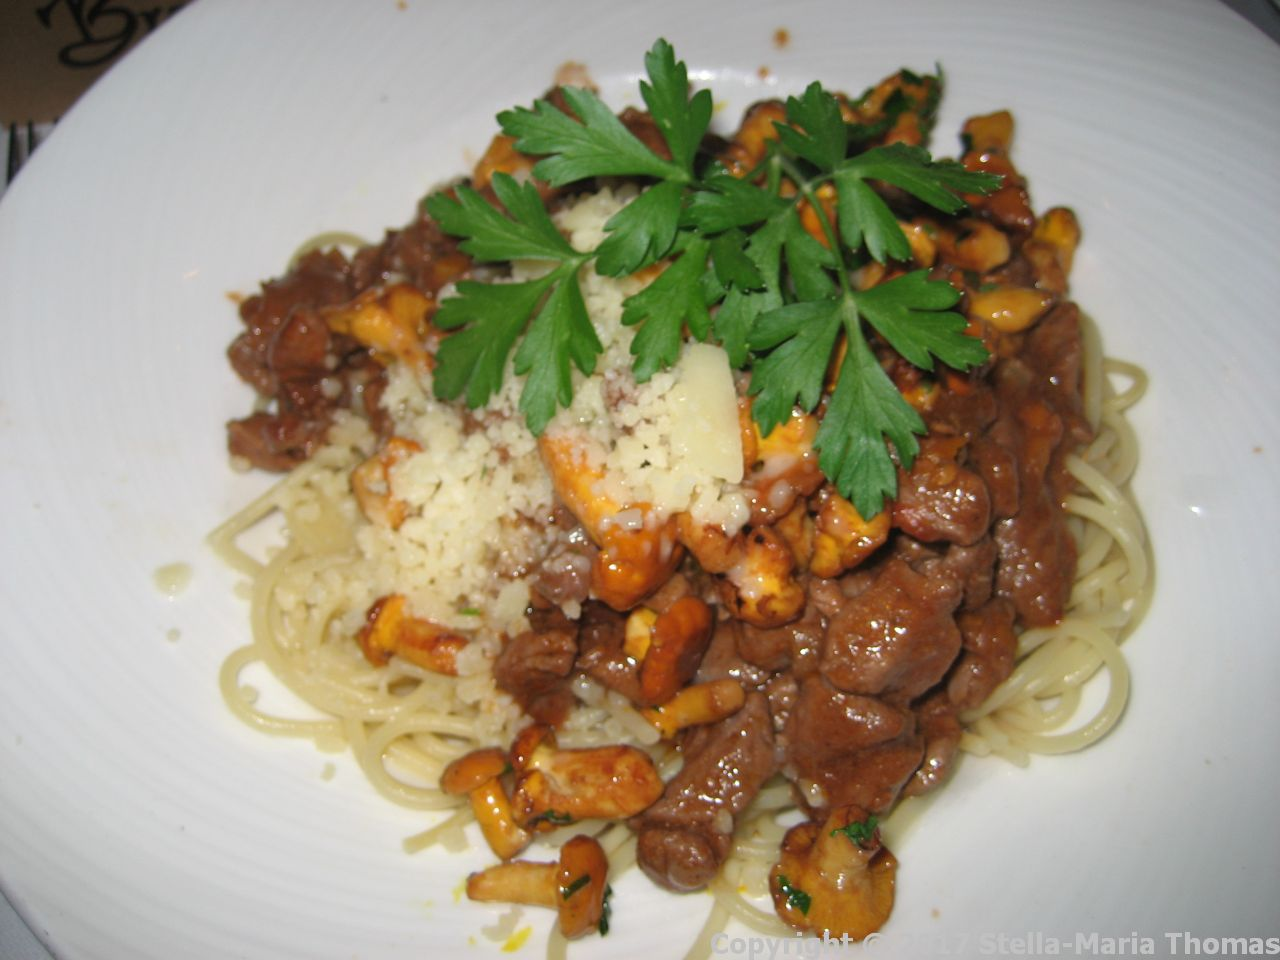 BRASSERIE - SPAGHETTI RAGOUT (VENISON WITH OYSTER MUSHROOMS, PARMESAN AND A GARDEN SALAD) 010